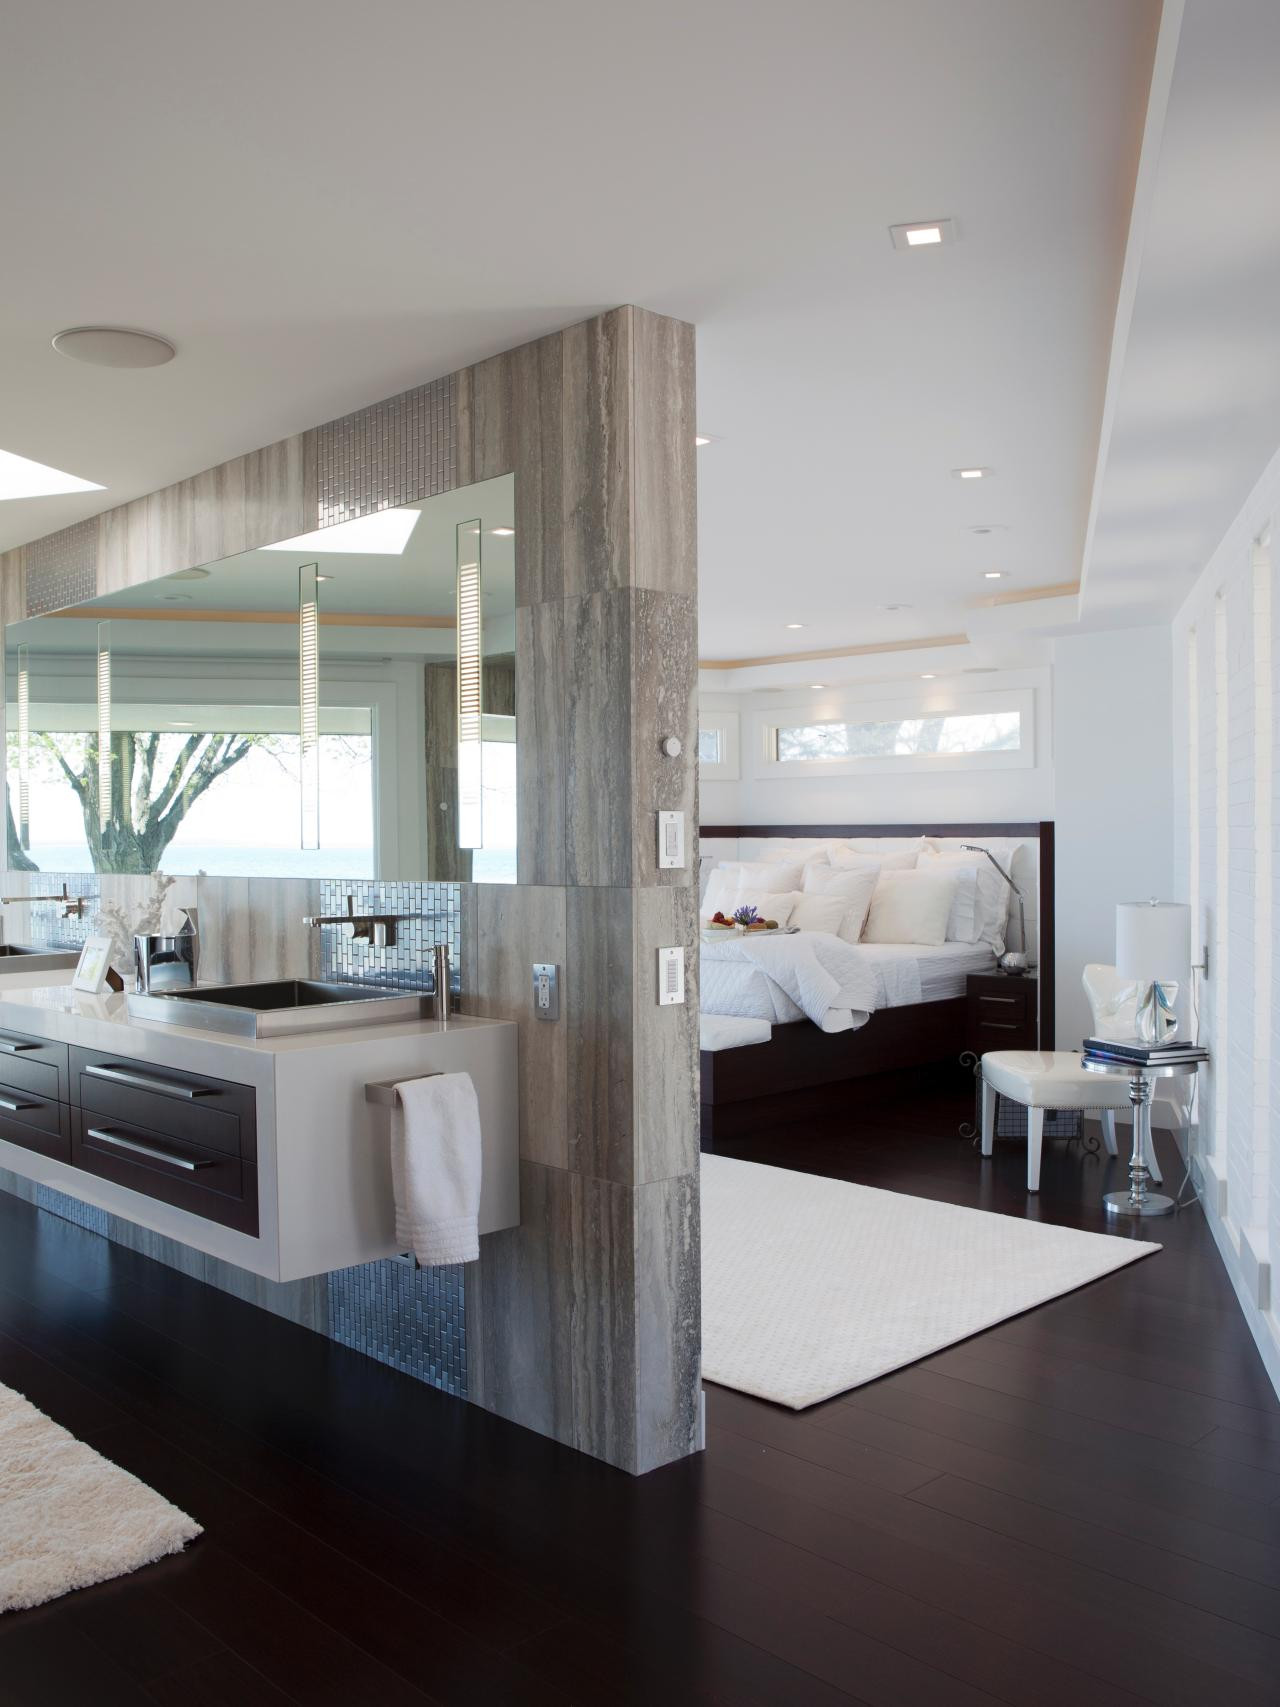 Master Bedroom Bathroom  6 Tips to Create a Unified Master Bedroom Design